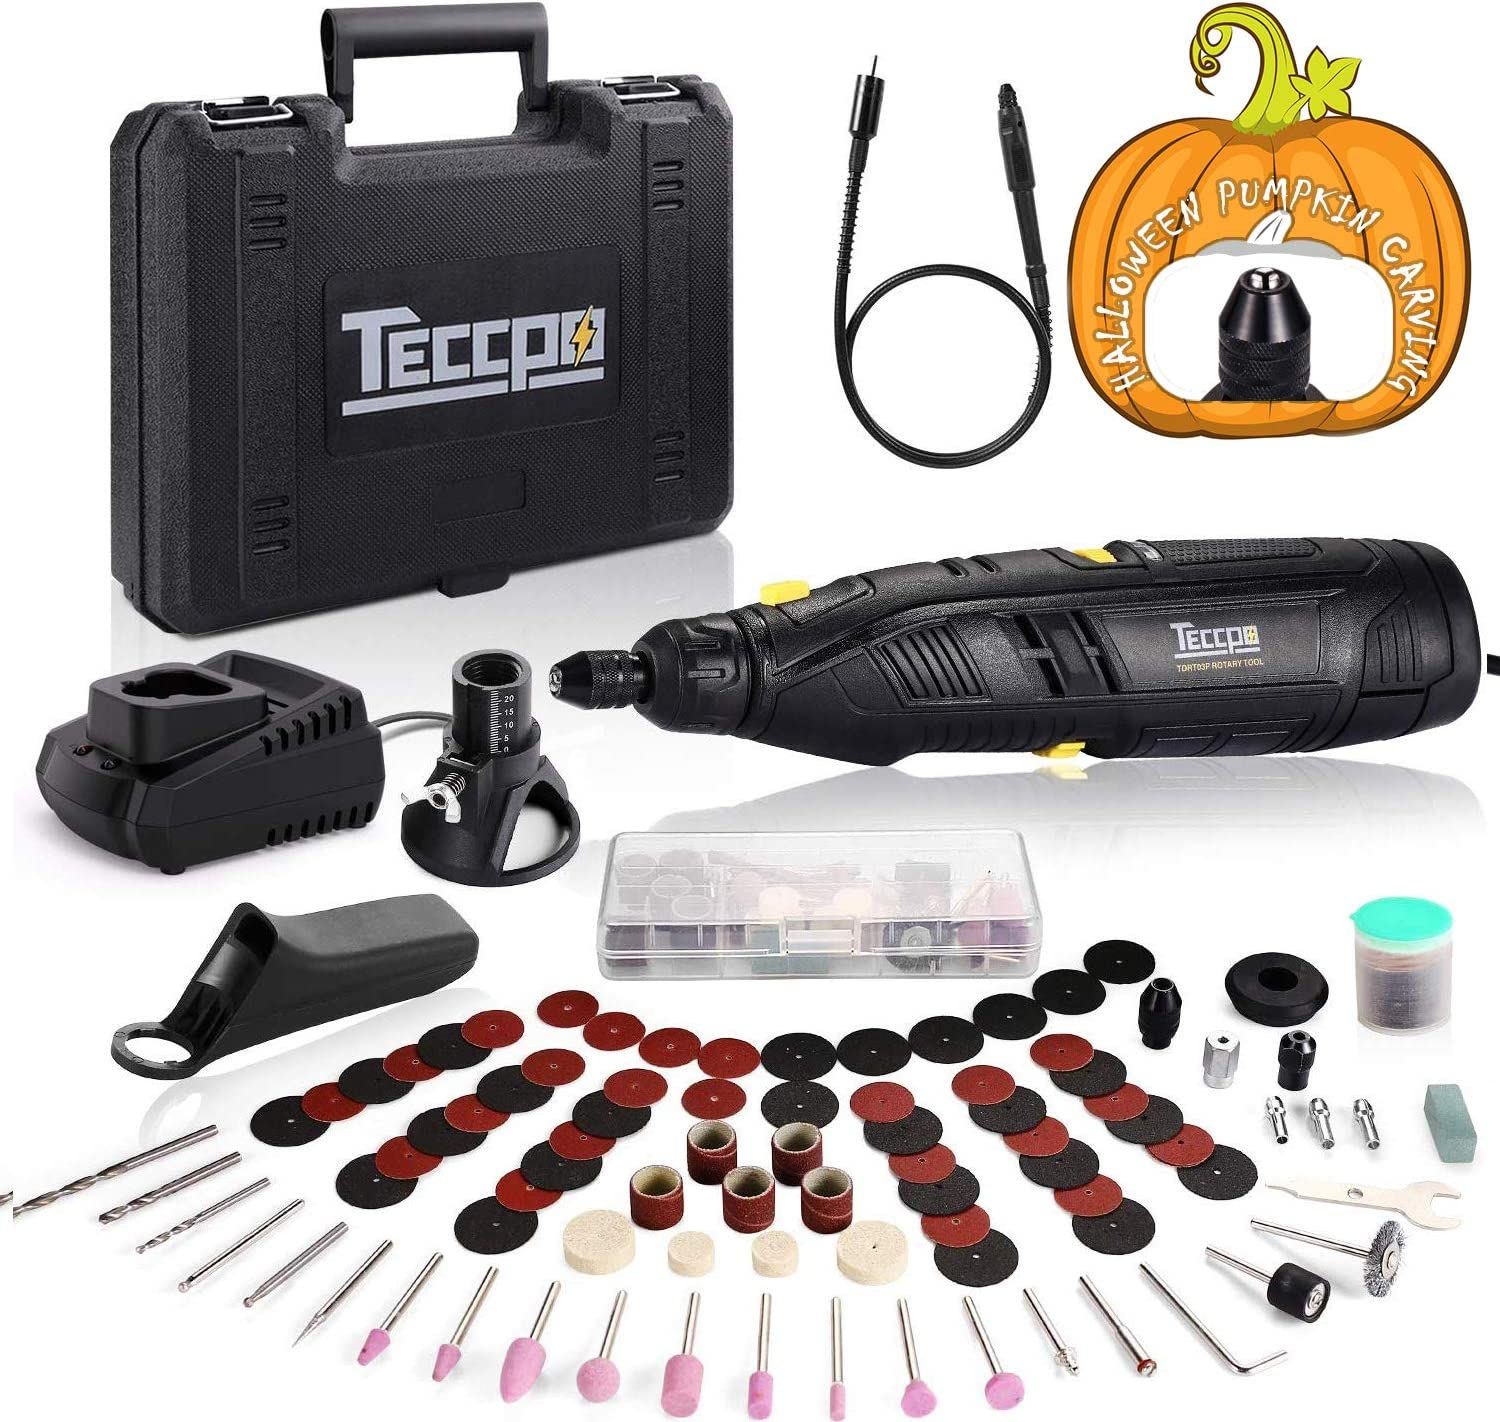 Cordless Rotary Tool, TECCPO 12V with 2.0Ah Lithium-ion Battery, 1-Hour Fast Charge, 5000-28000RPM 6-Speeds Adjustable, Universal Keyless Chuck, 80 Accessories, Perfect for Halloween Pumpkins Carving.